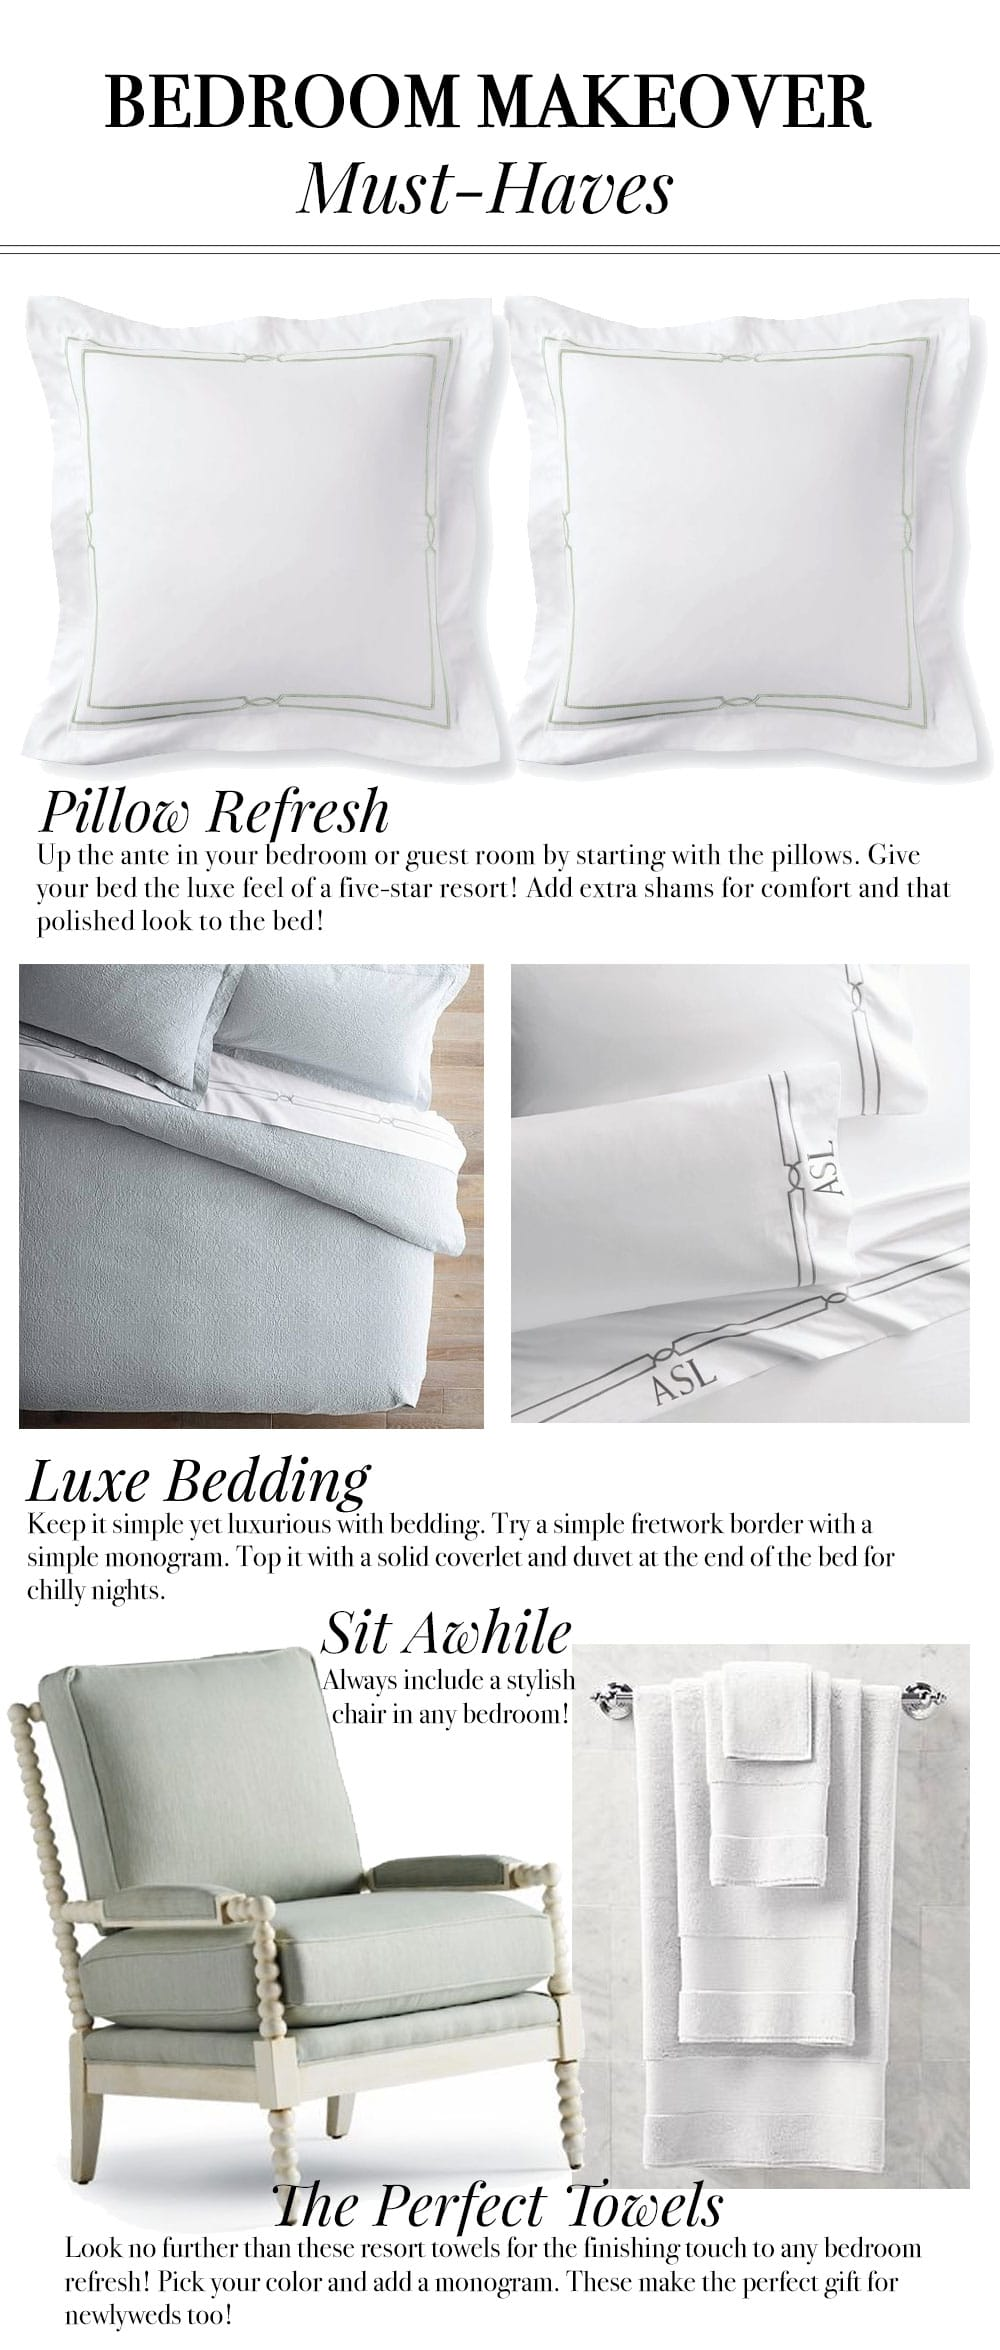 MUSTHAVES for any bedroom makeover! The best in sheets, towels, etc!